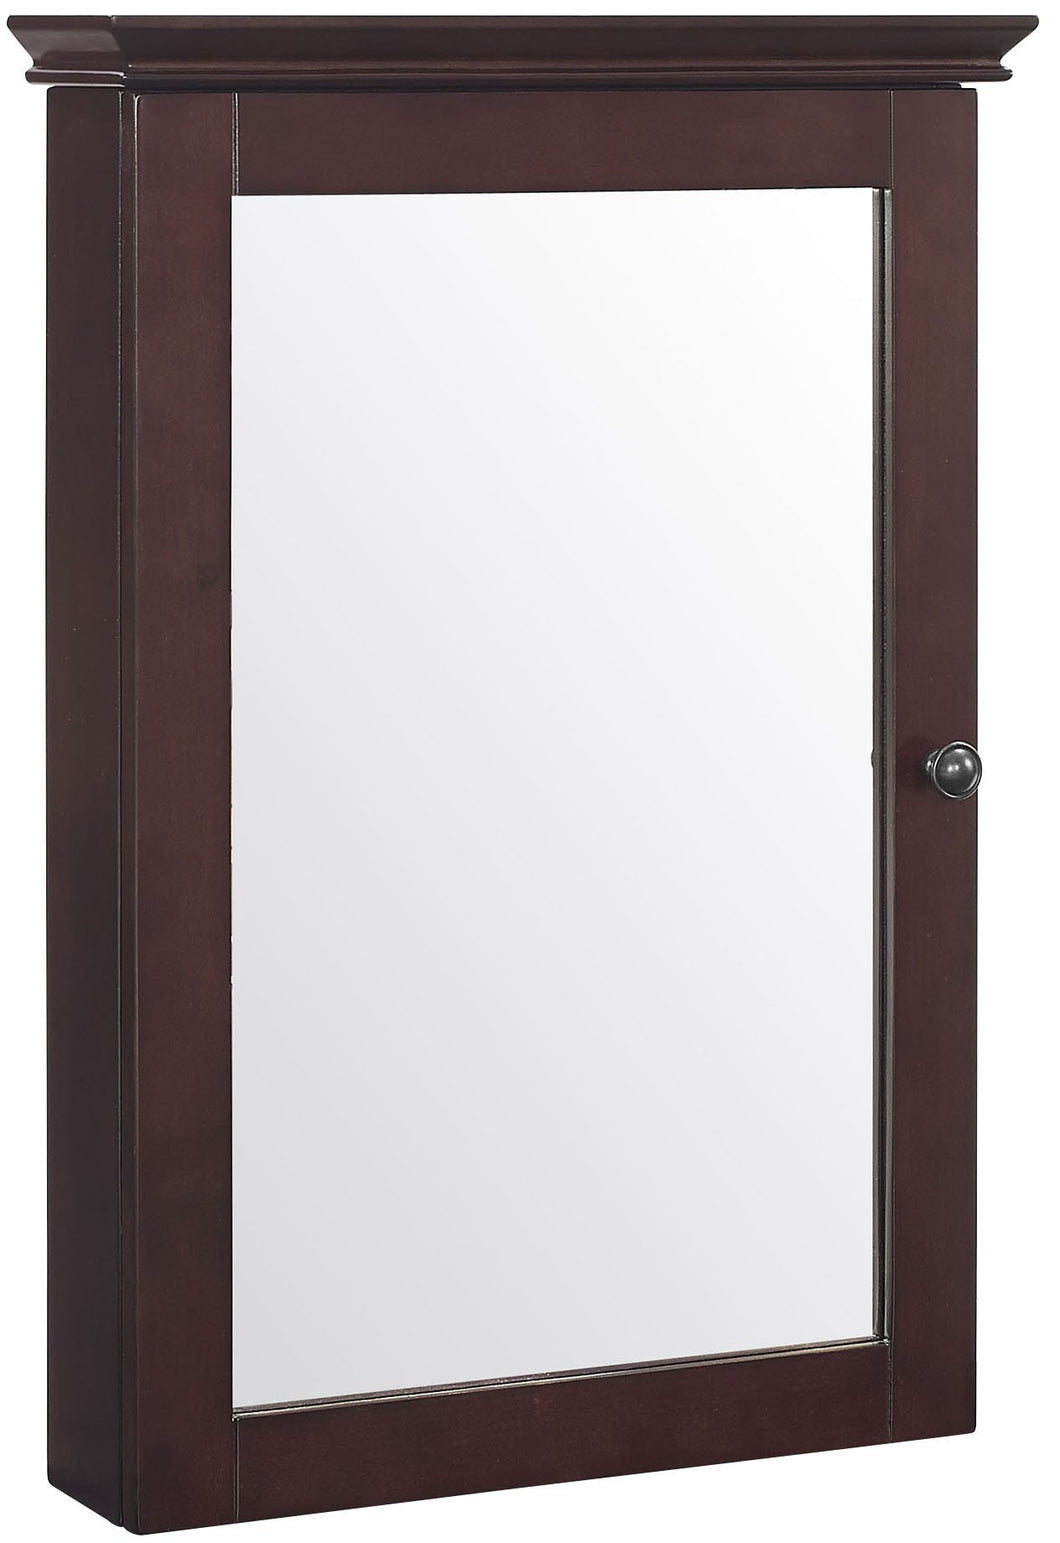 Discover the best crosley furniture lydia mirrored bathroom wall cabinet espresso